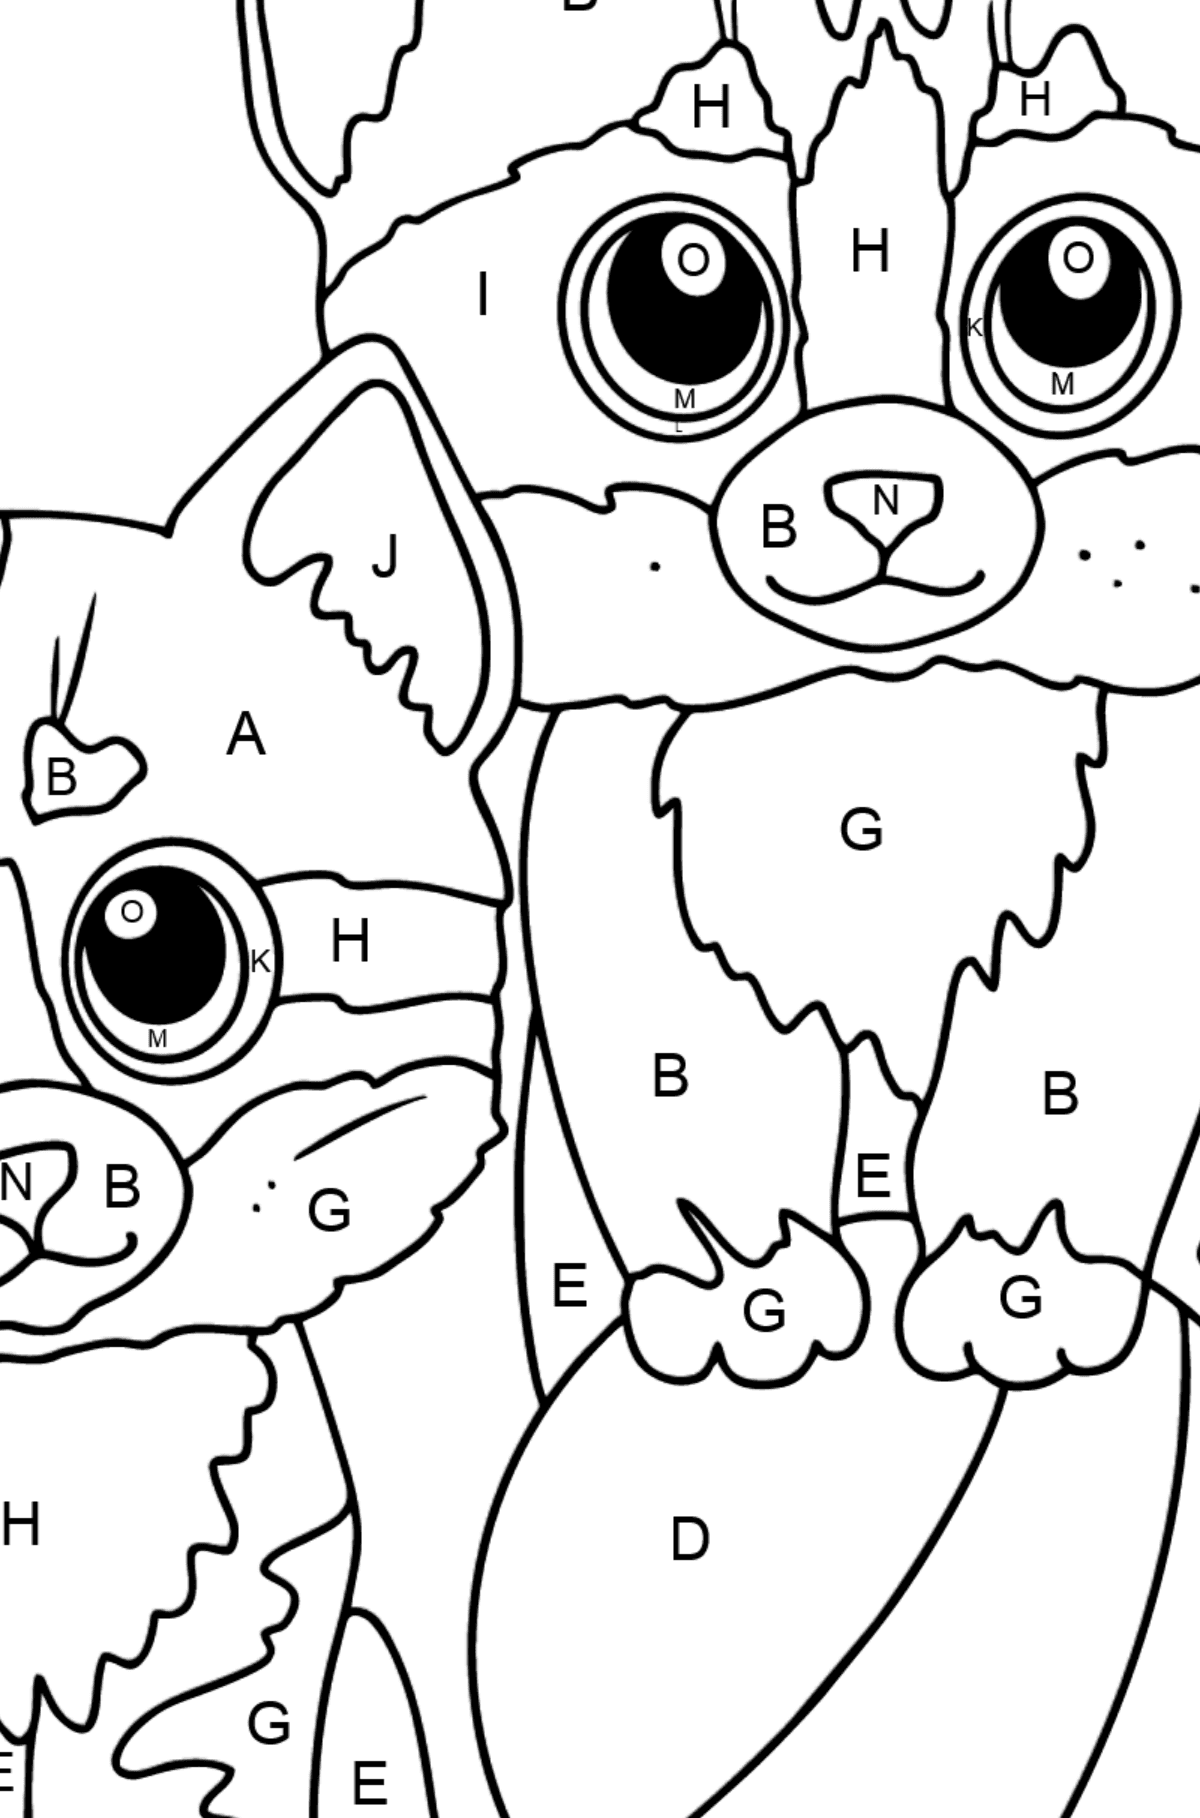 Coloring Page - Two Kittens with a Ball - Coloring by Letters for Kids